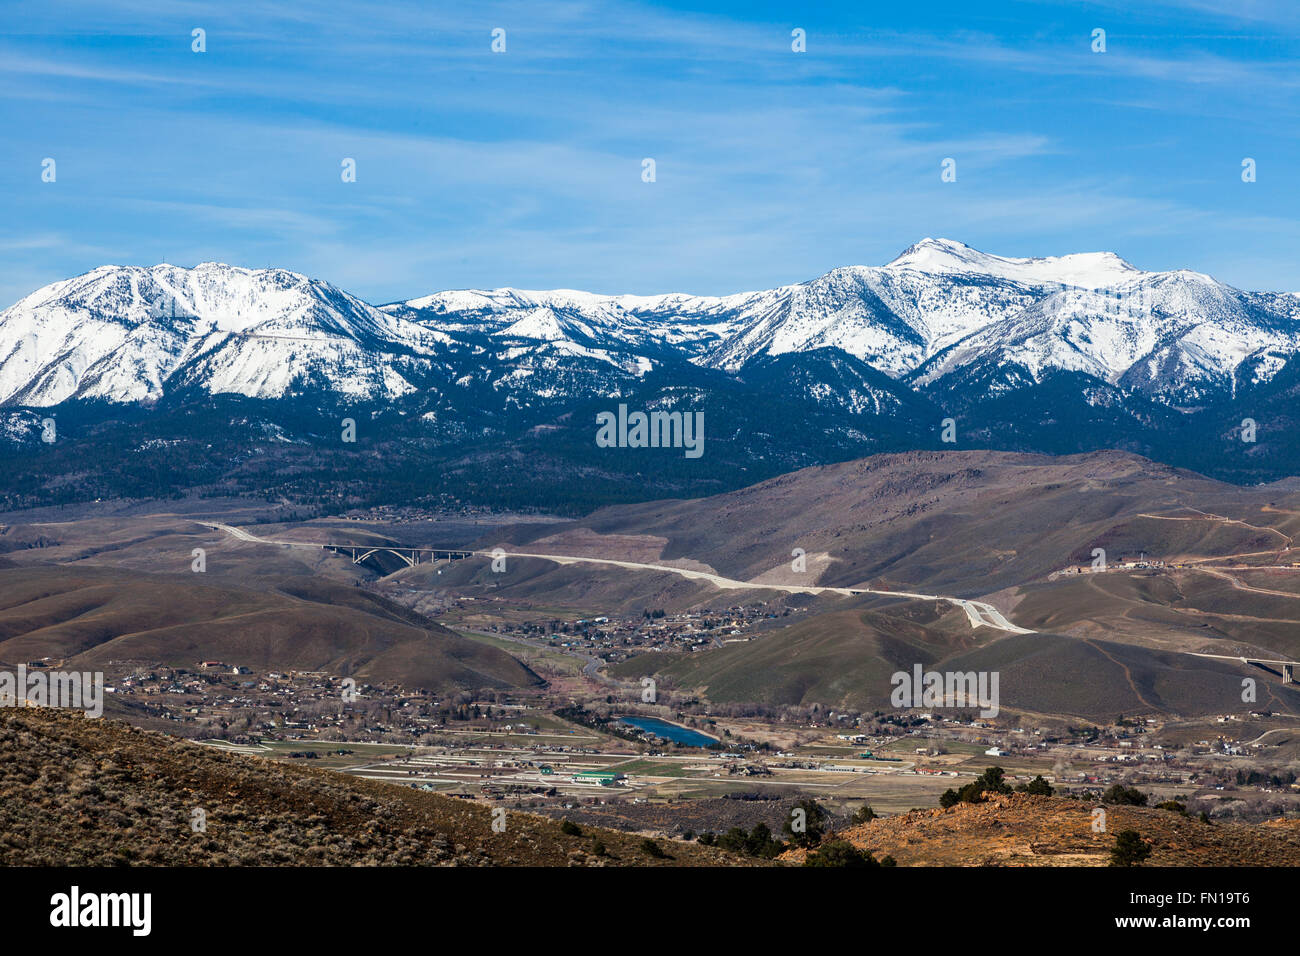 View of the Washoe Valley and Interstate 580 from the Geiger Grade Road south of Reno, Nevada - Stock Image